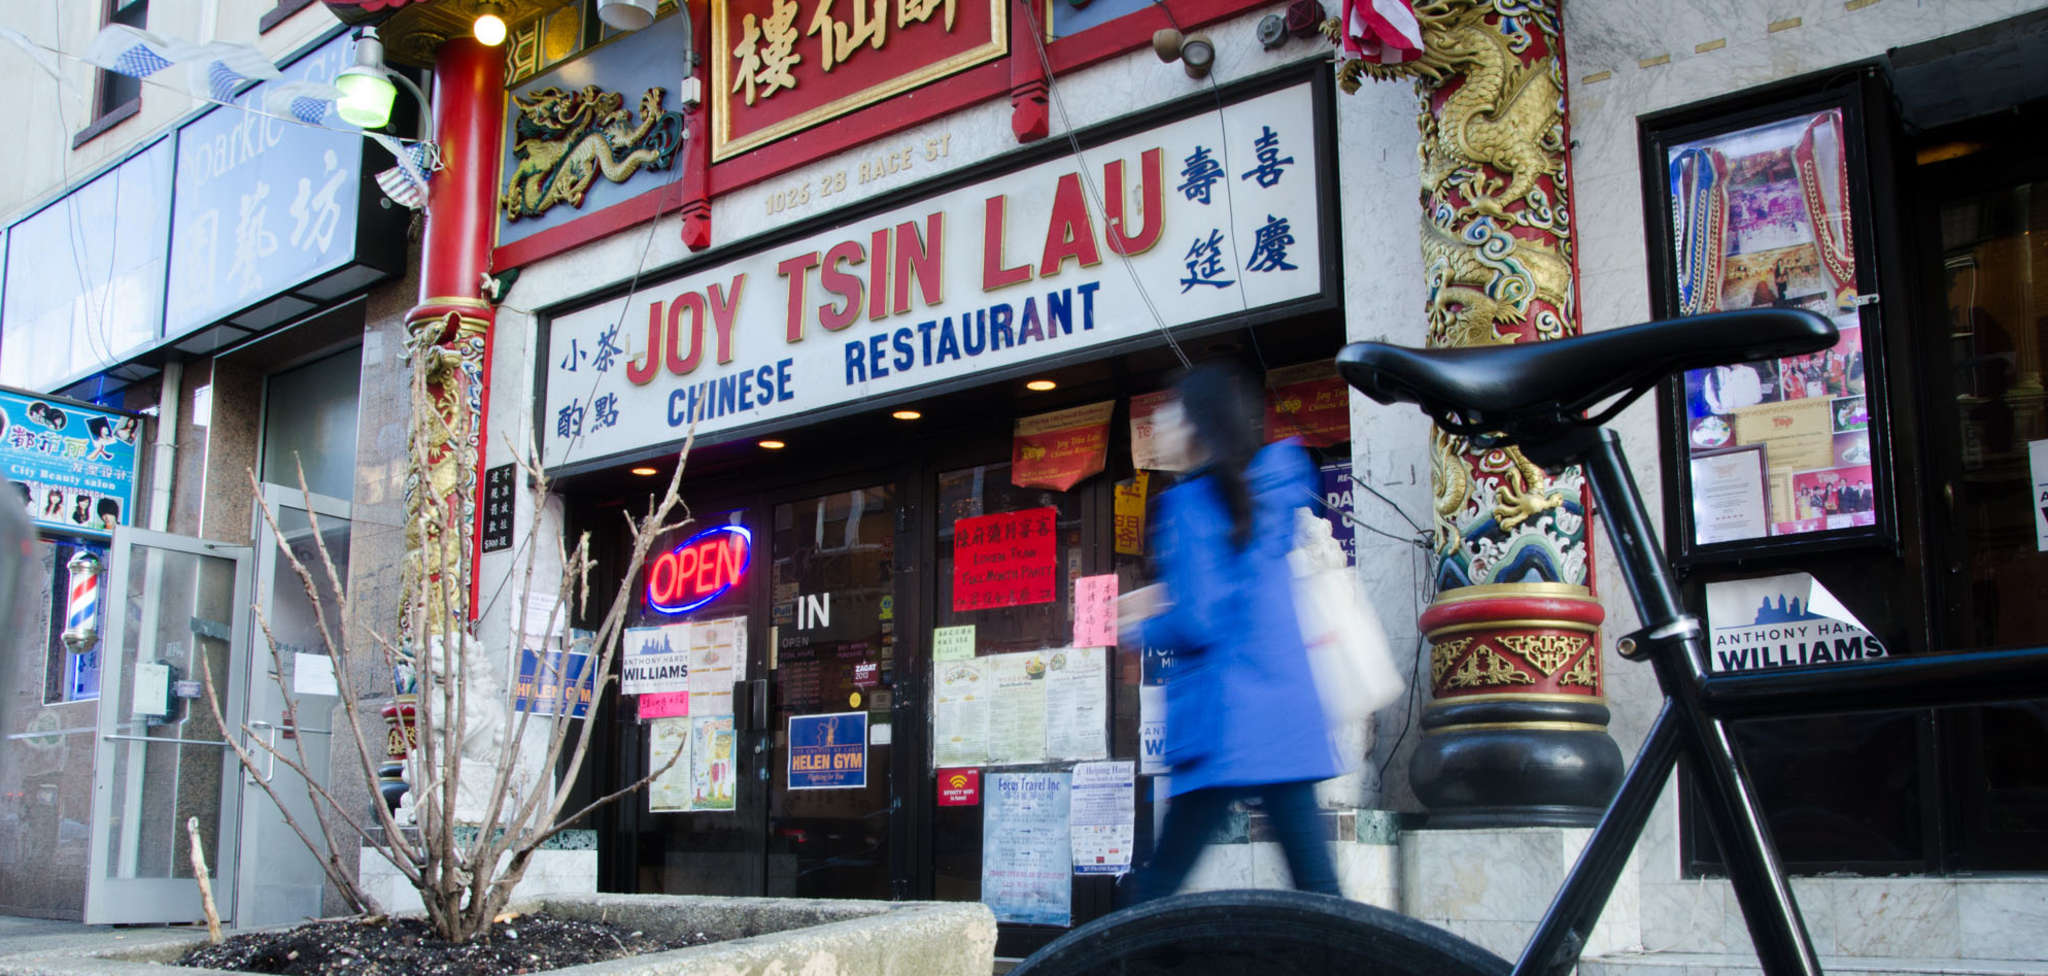 Joy Tsin Lau: Even Seth Williams might not want a free meal from this place.